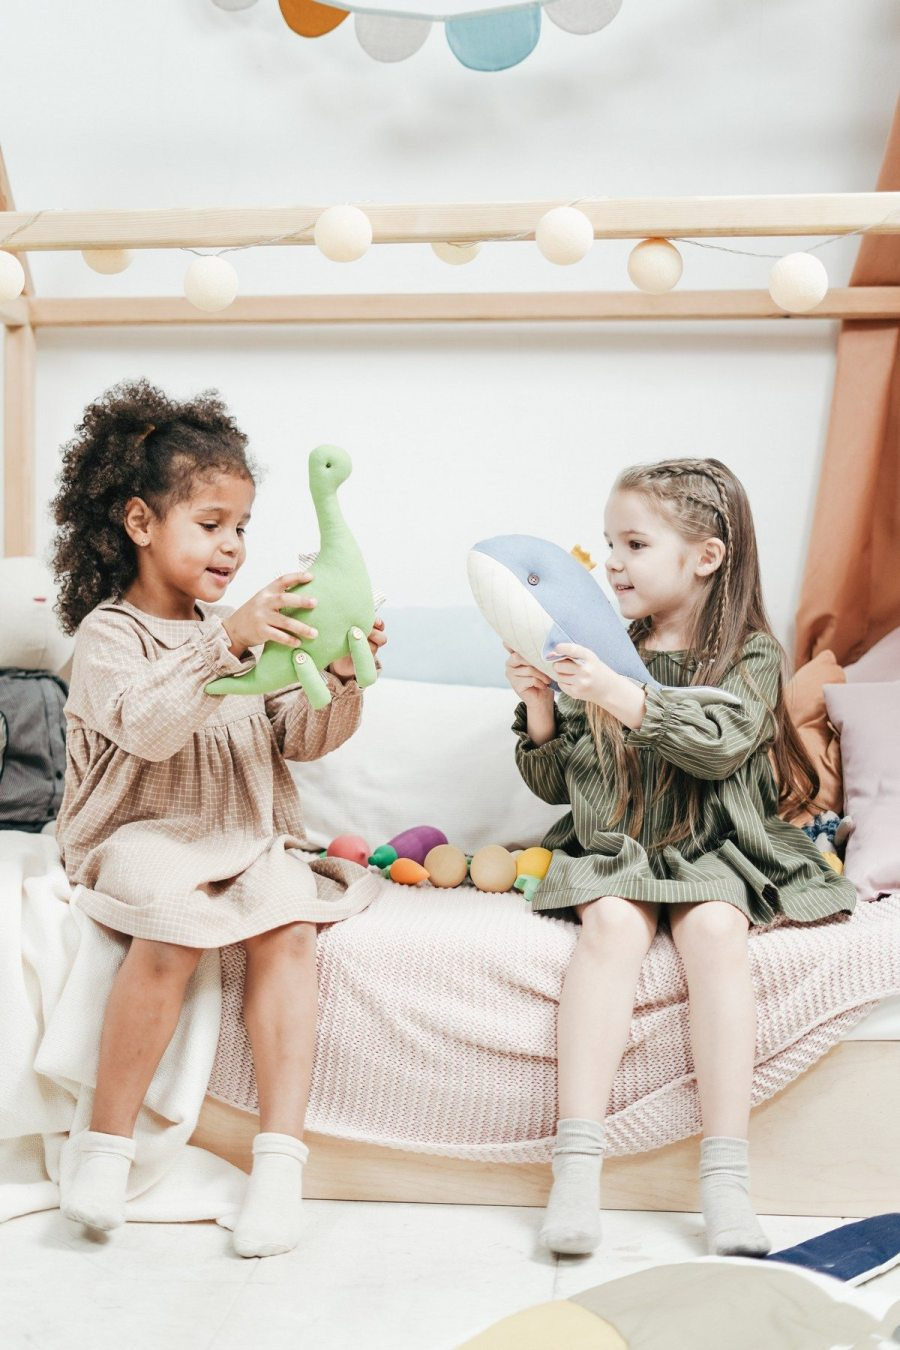 Your child should continue to sleep with their plushies as long as he likes it! Children have their own schedule for growing up and its much slower than some adults have the patience for.